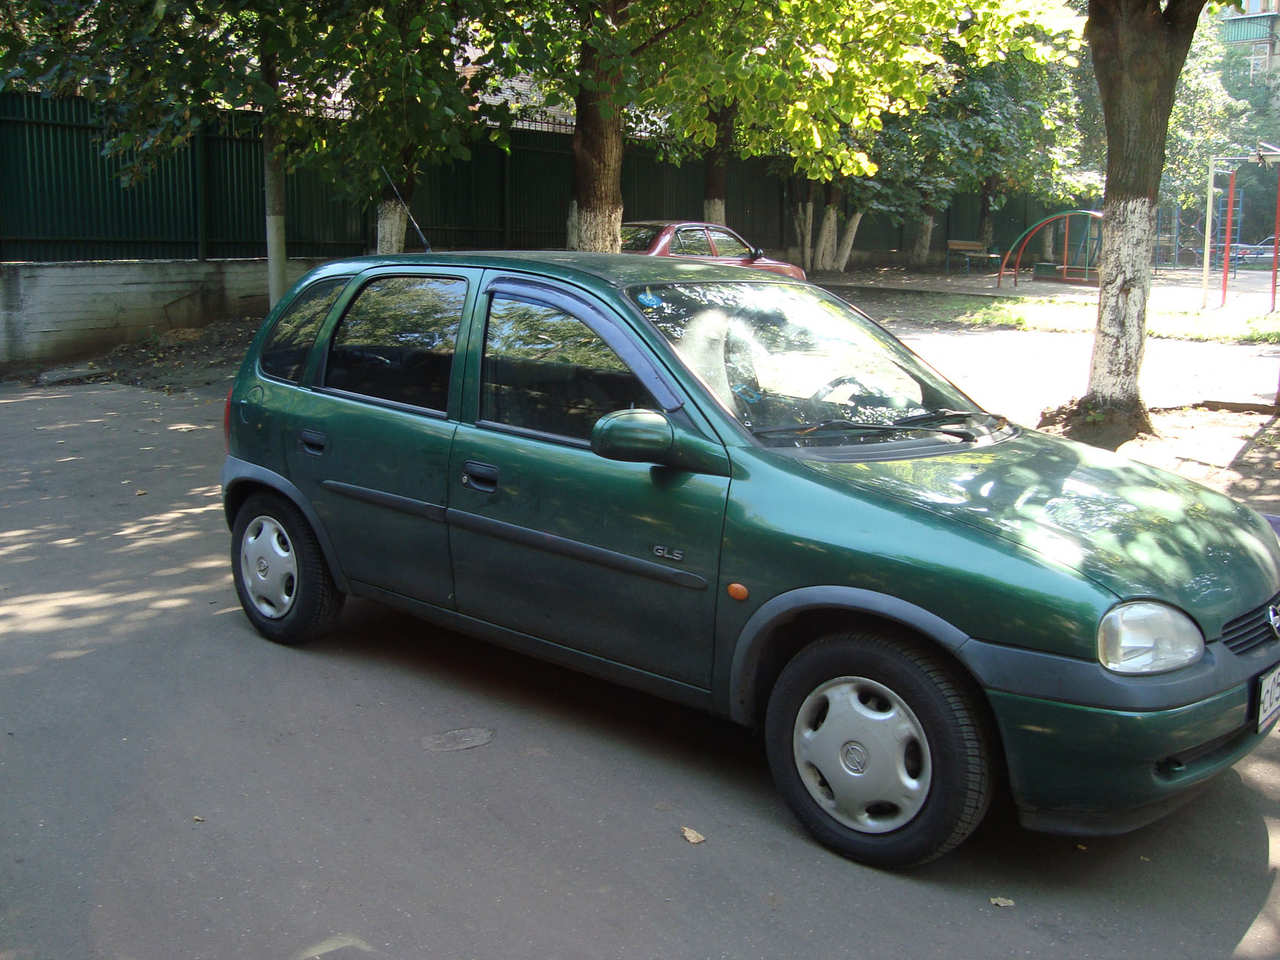 Opel Corsa 1 4 1998 Technical Specifications Interior And Exterior Opel  Corsa 2013 Opel Corsa 98 Fuse Box. Source. fuse box for astra 2001 ...